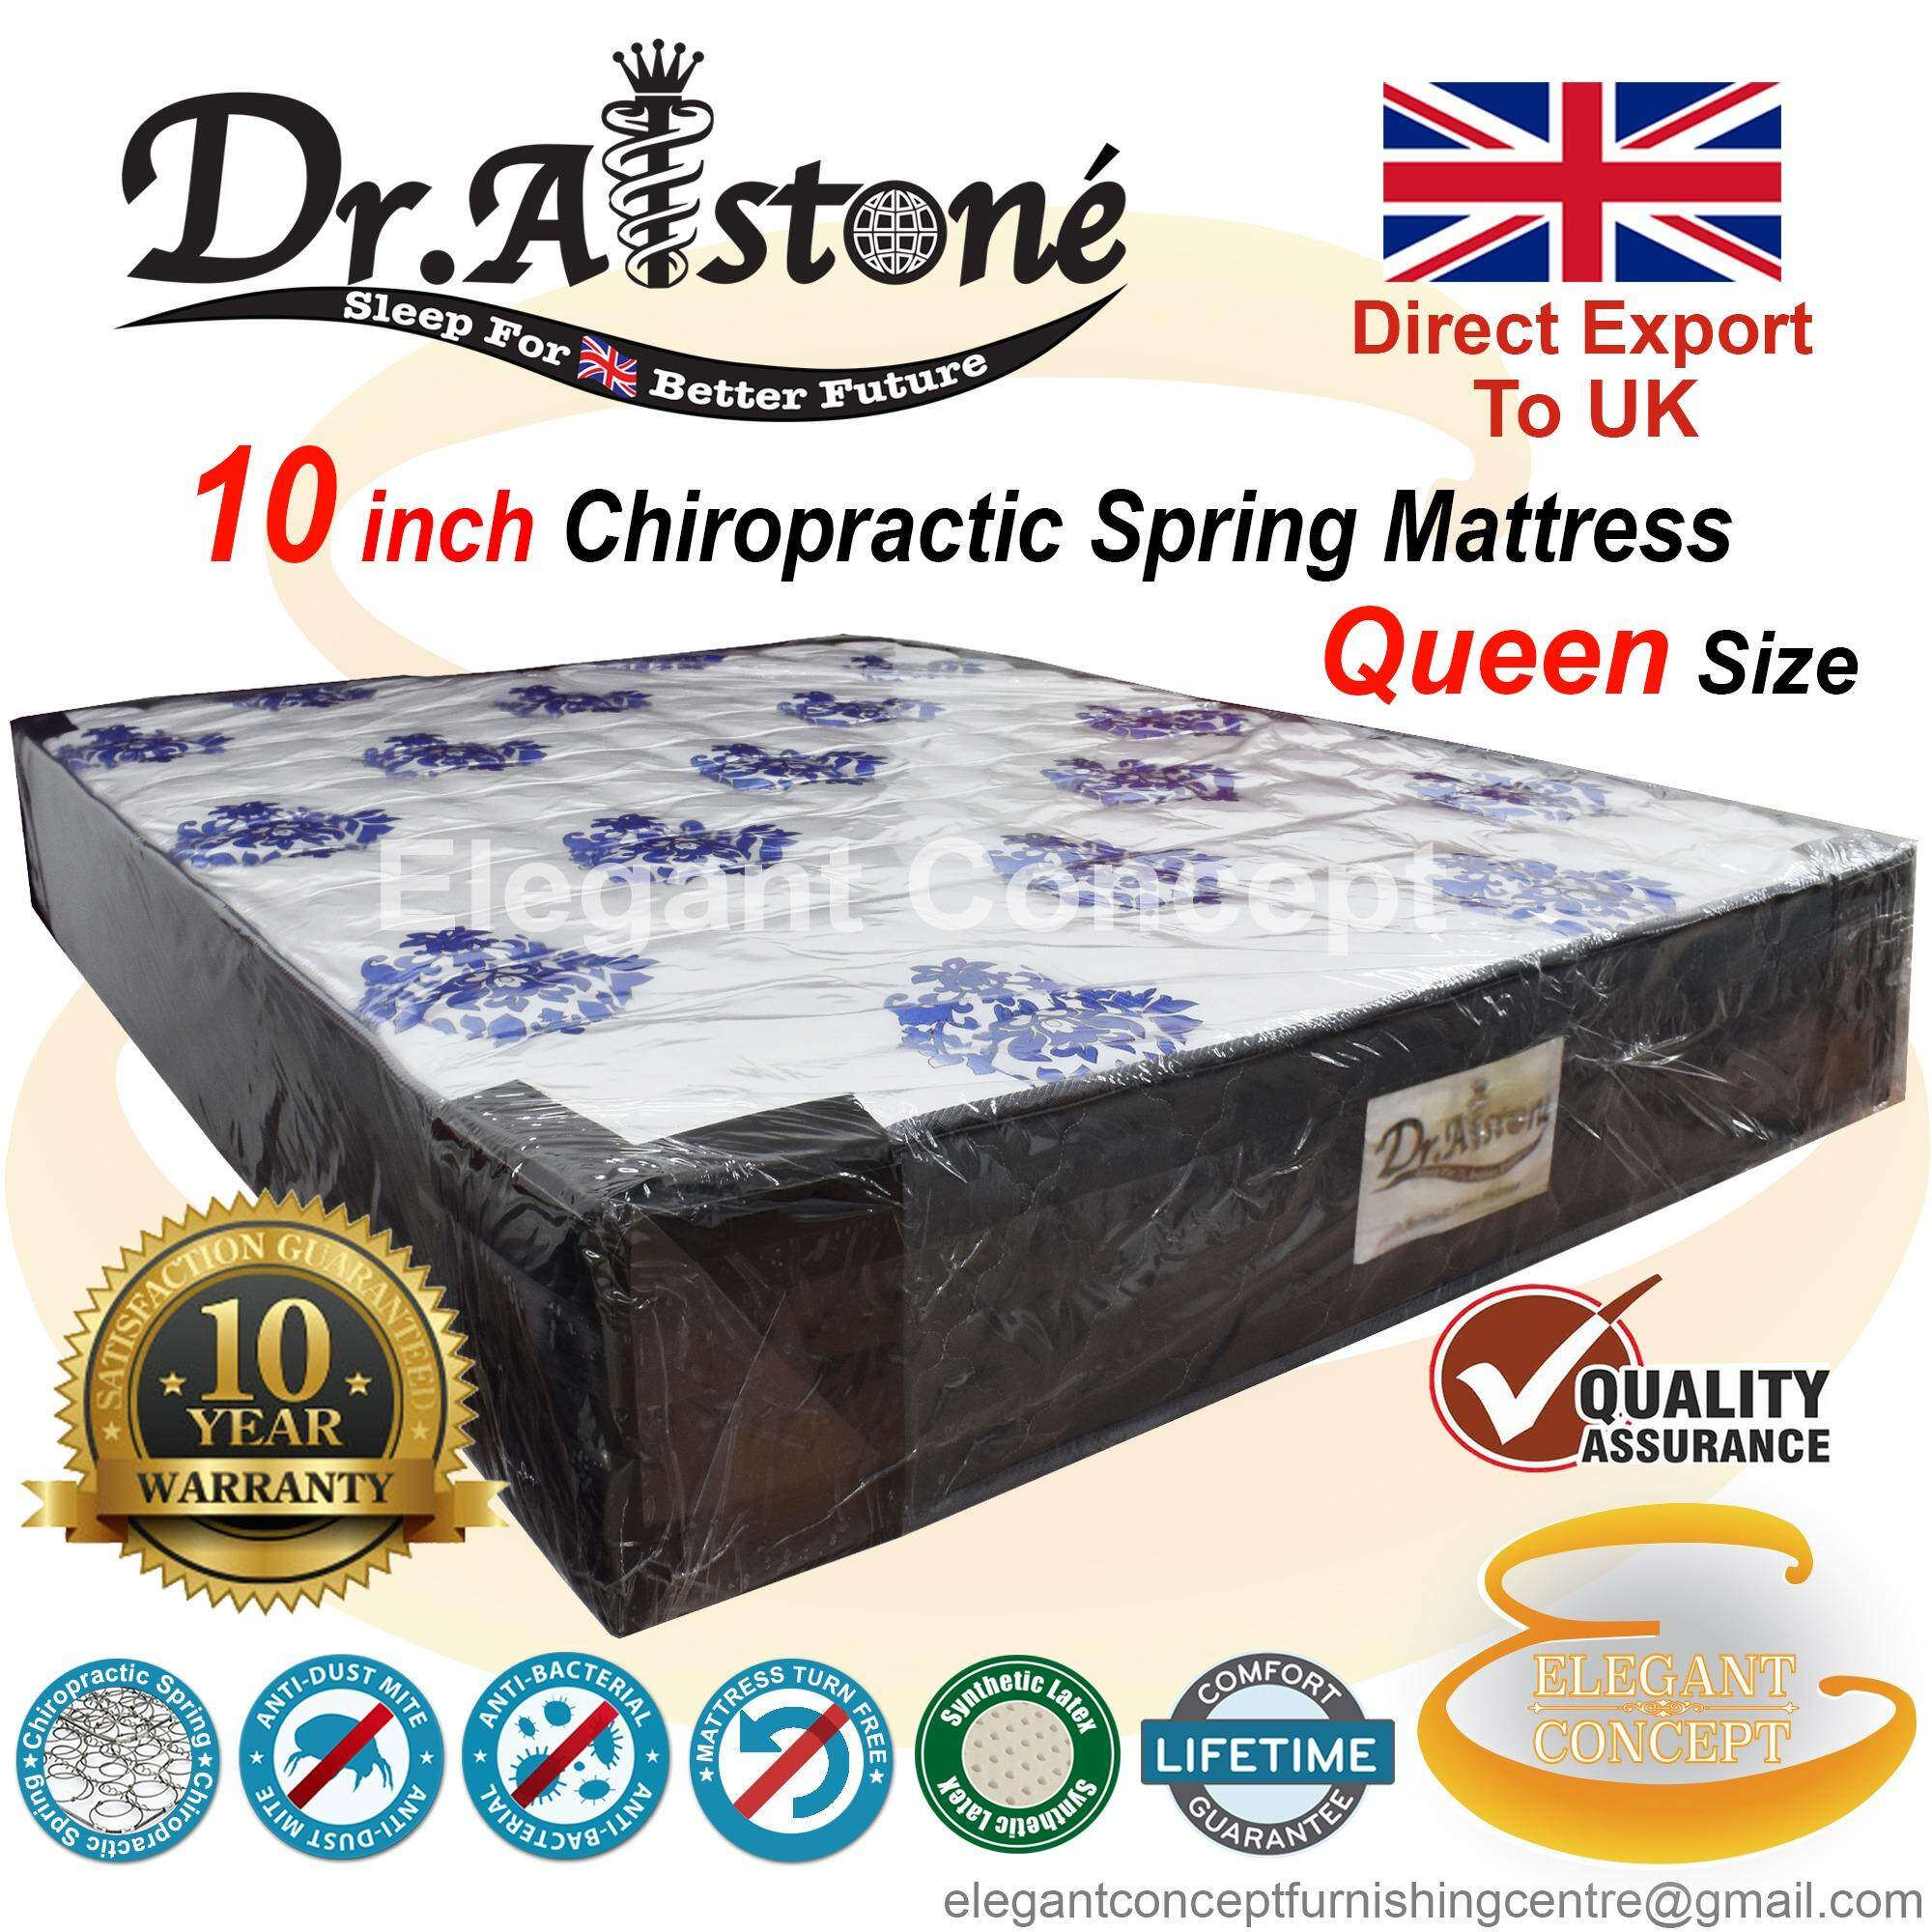 back fantastic recommended memory as reviews wells size lower large support per type backs sertamattress beds posh backache mattress plus bed of chiropractor good firm mattresses apalf white foam together pain with us best